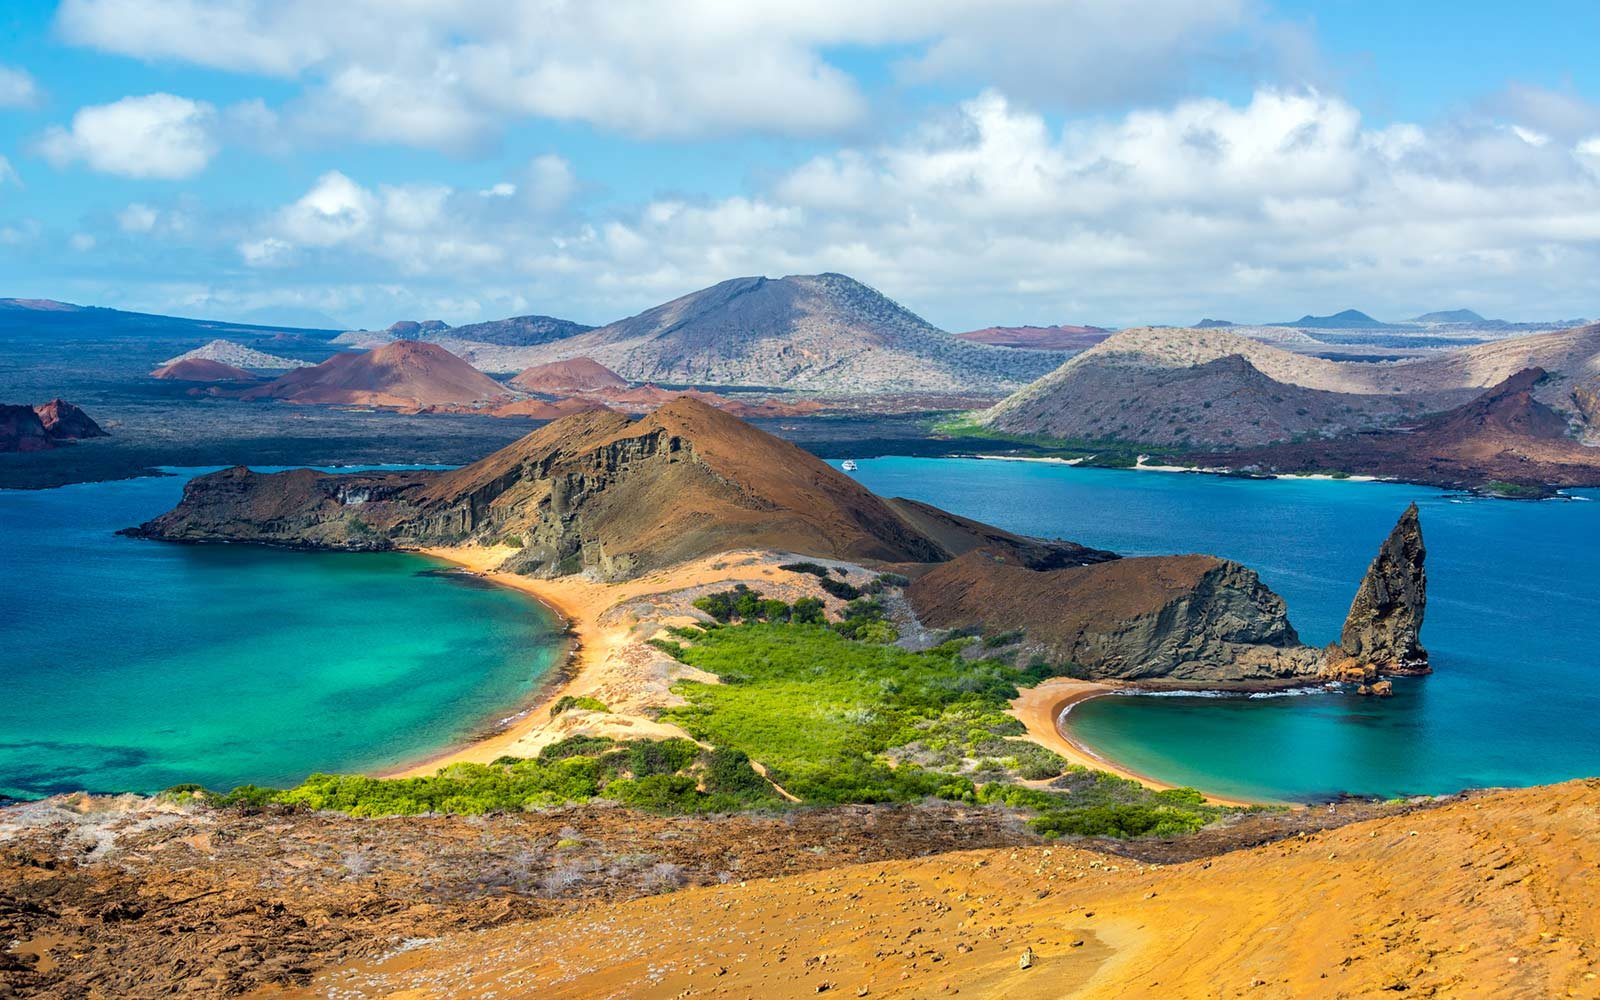 Galapagos Islands Cruise - June 2020